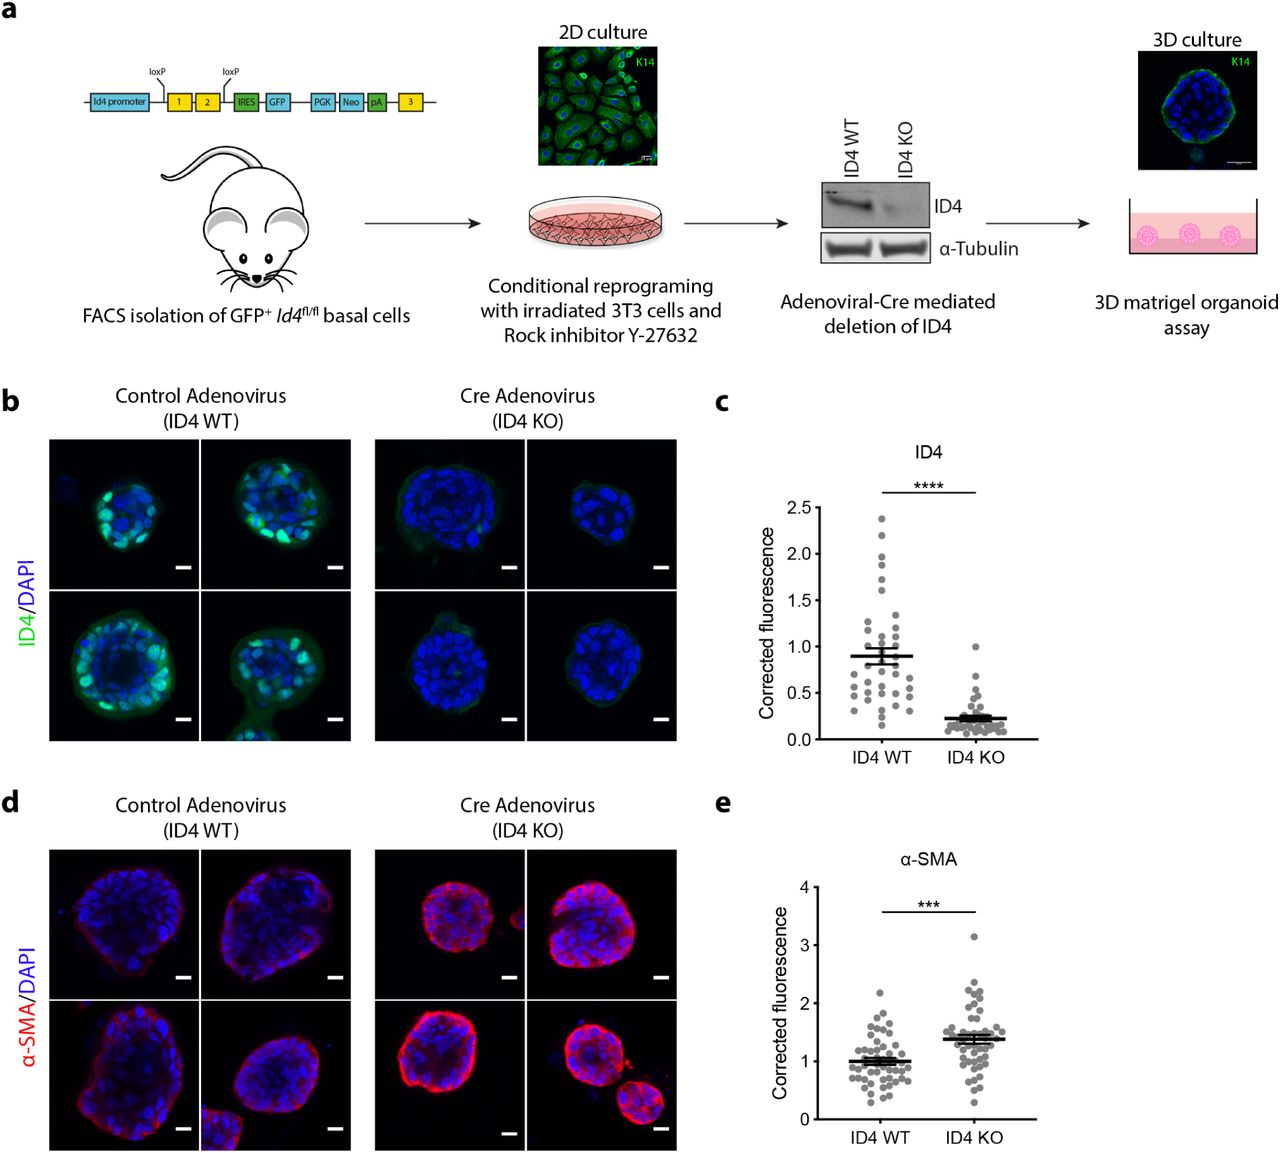 ID4 inhibits myoepithelial differentiation of organoids. a) Schematic diagram of 3D Matrigel organoid assay. ID4-GFP+ basal cells were FACS purified from adult (10-11 weeks) ID4-GFP reporter mice. Exon 1 and 2 of Id4 are floxed and a GFP reporter cassette introduced. Basal cells are reprogrammed in culture using ROCK inhibitor Y-27632 and irradiated NIH-3T3 feeder cells. Adenoviral Cre is used to knock out ID4 as shown by western blotting. Single cells are then seeded on top of a Matrigel plug and grown for 6 days followed by immunofluorescent staining and quantification. Organoids grown from conditionally reprogrammed basal cells were treated with control GFP adenovirus (ID4 WT) or with Cre Adeno virus (ID4 KO) then stained for ID4 (b) and α-SMA (d). Scale bar = 10 μm. Fluorescence was quantified for ID4 (c) and α-SMA (e) in approximately 10 organoids per experiment. n=4. Unpaired two-tailed students t-test. *** p